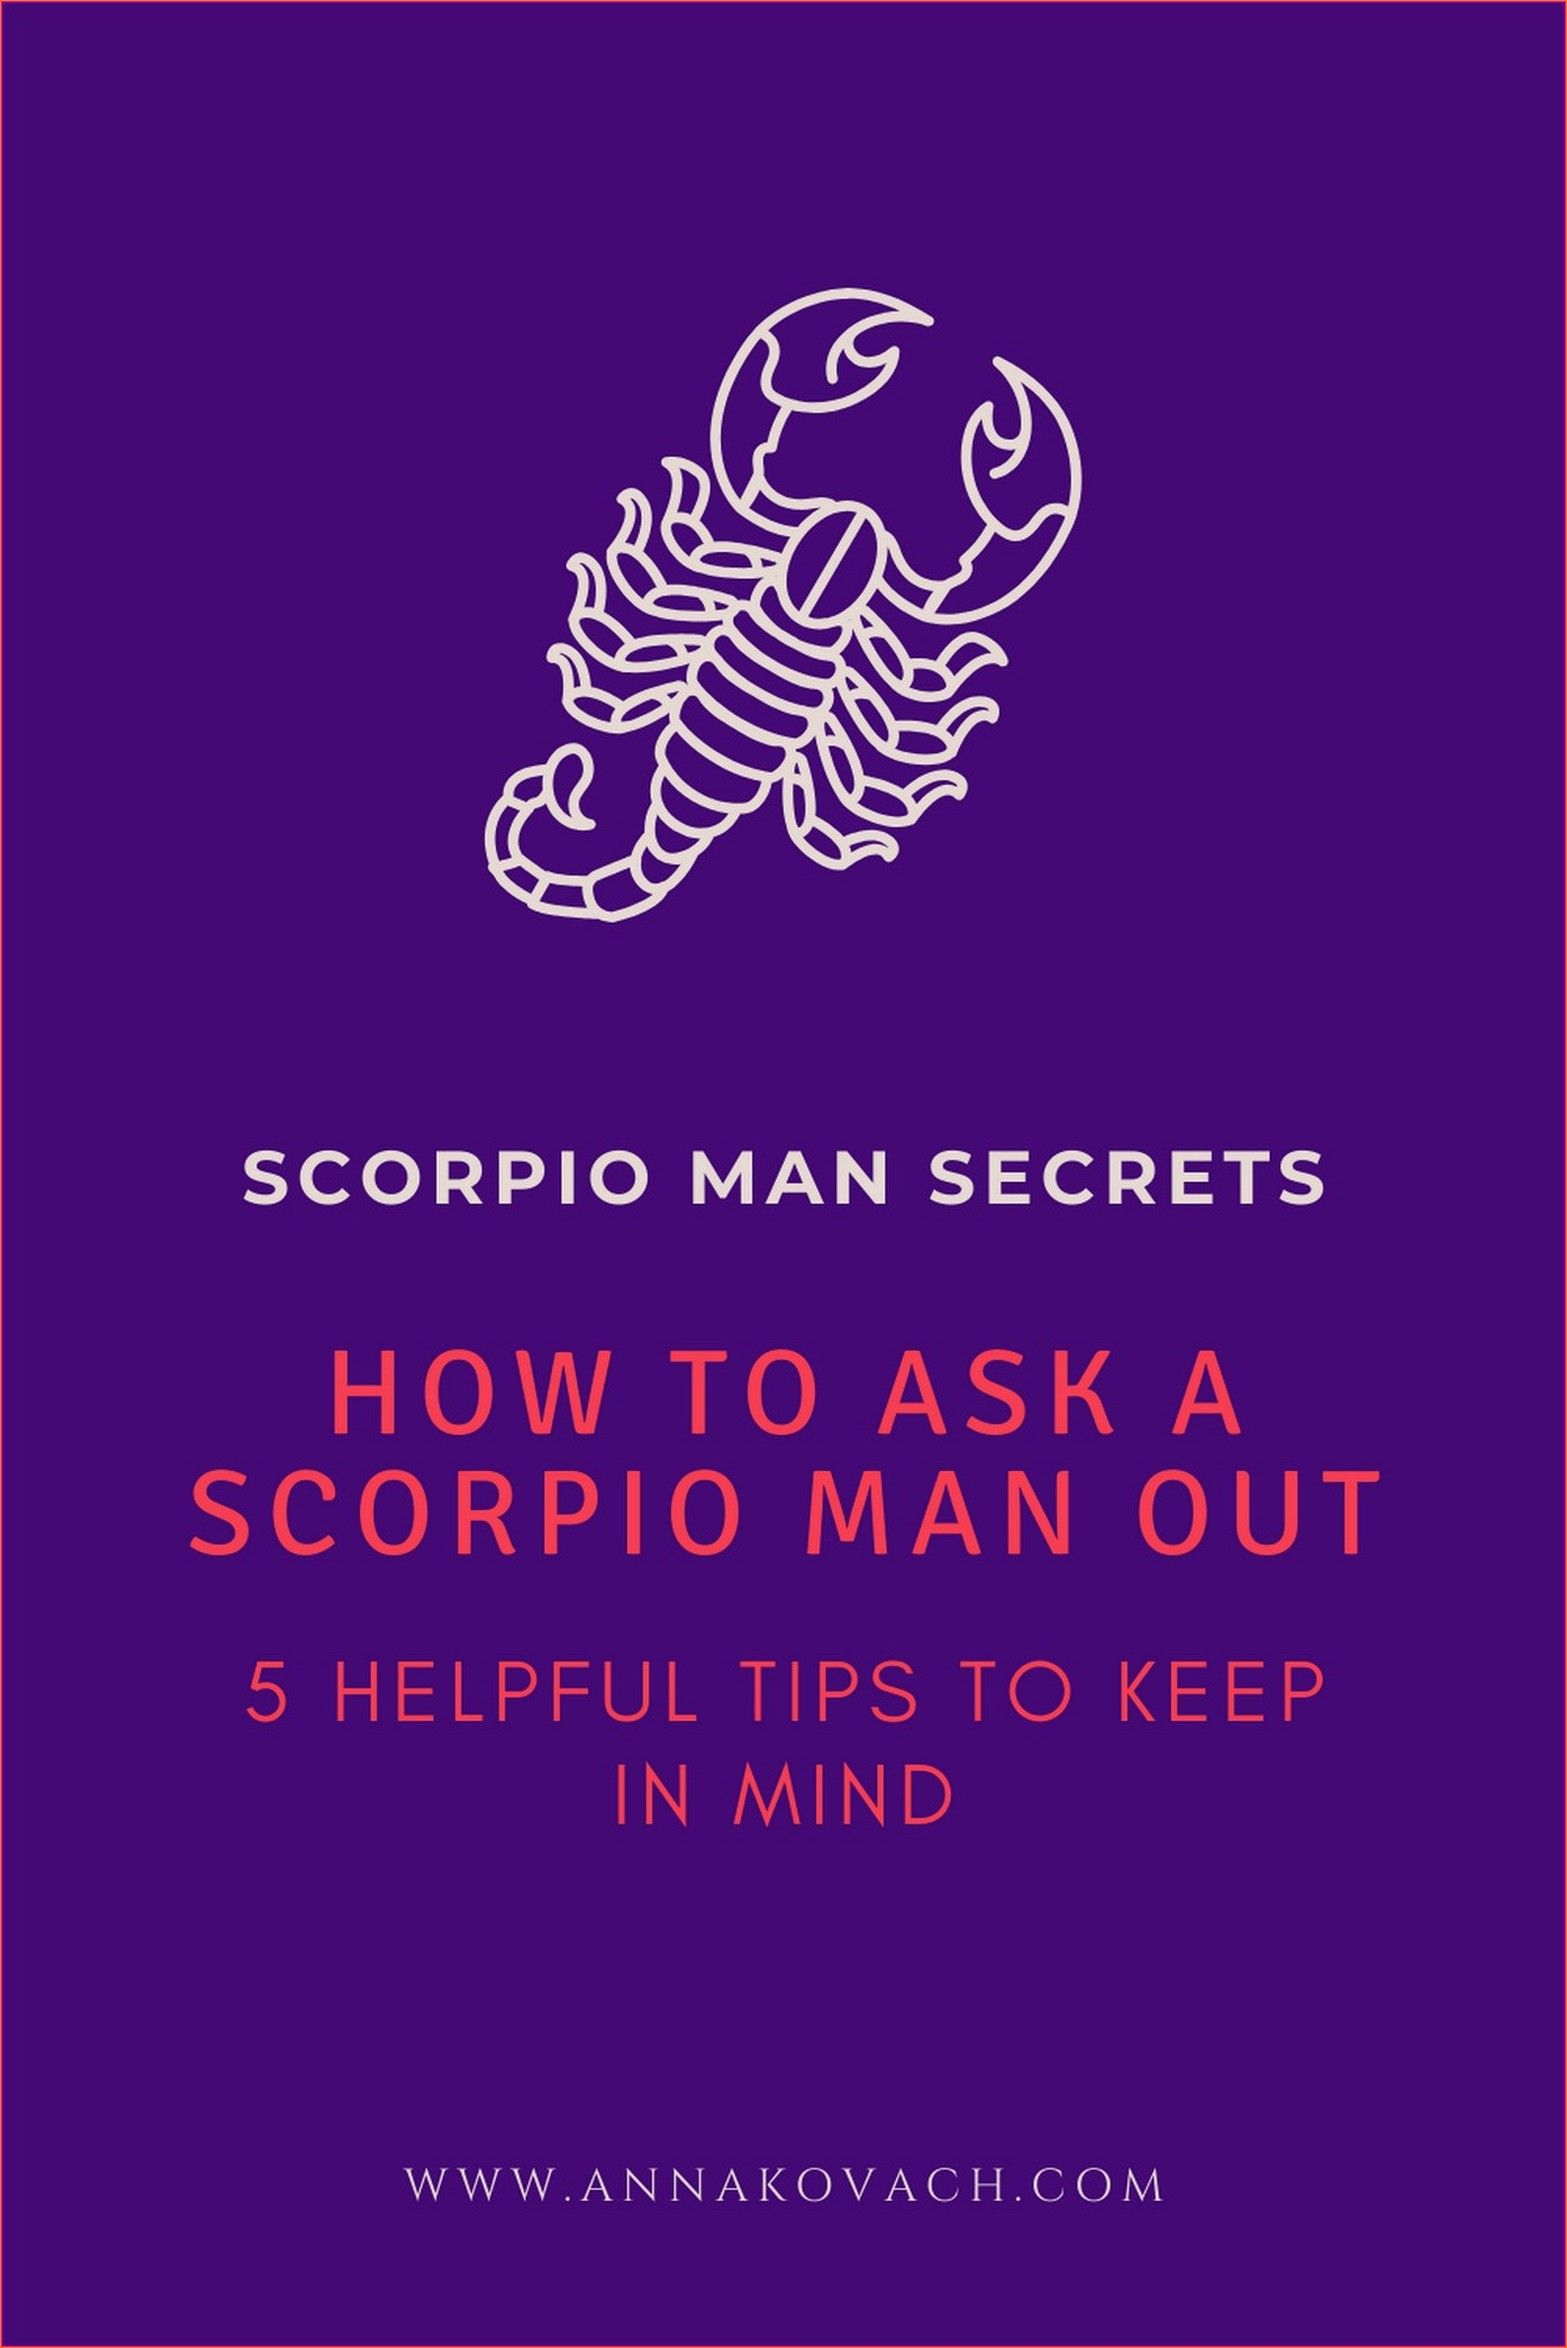 How to get a scorpio man attention